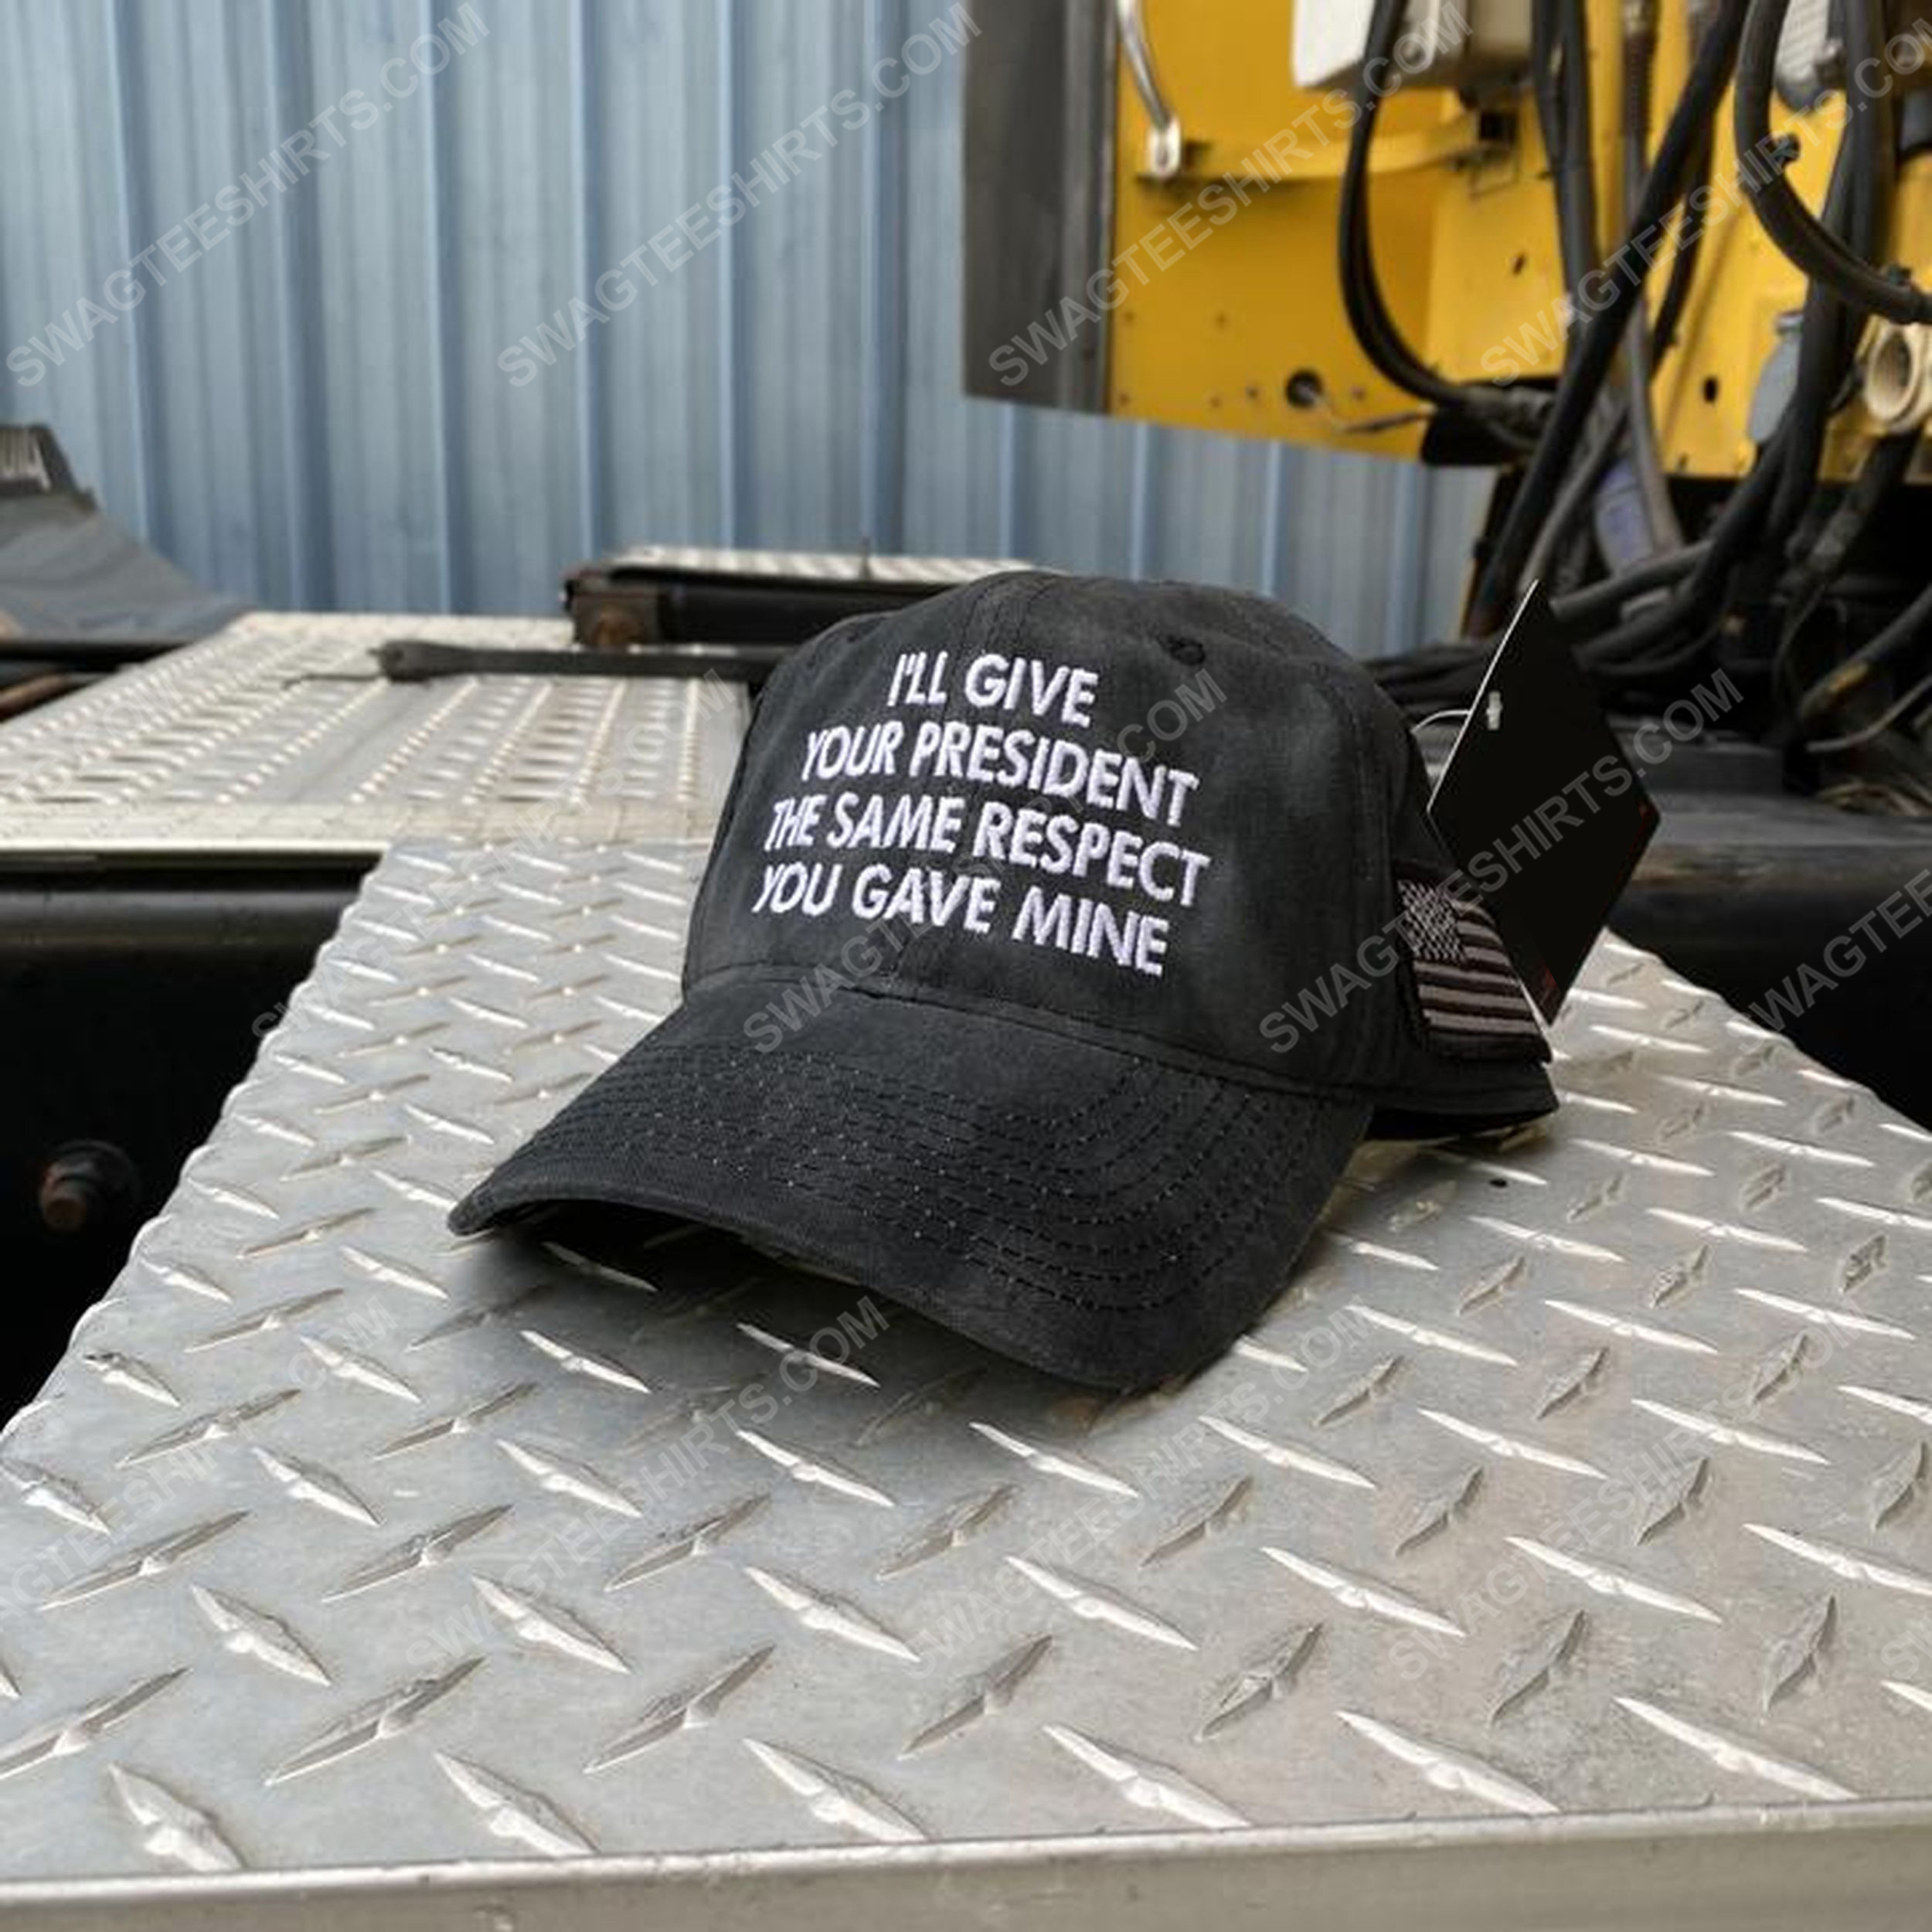 I'll give your president the same respect you gave mine full print classic hat 1